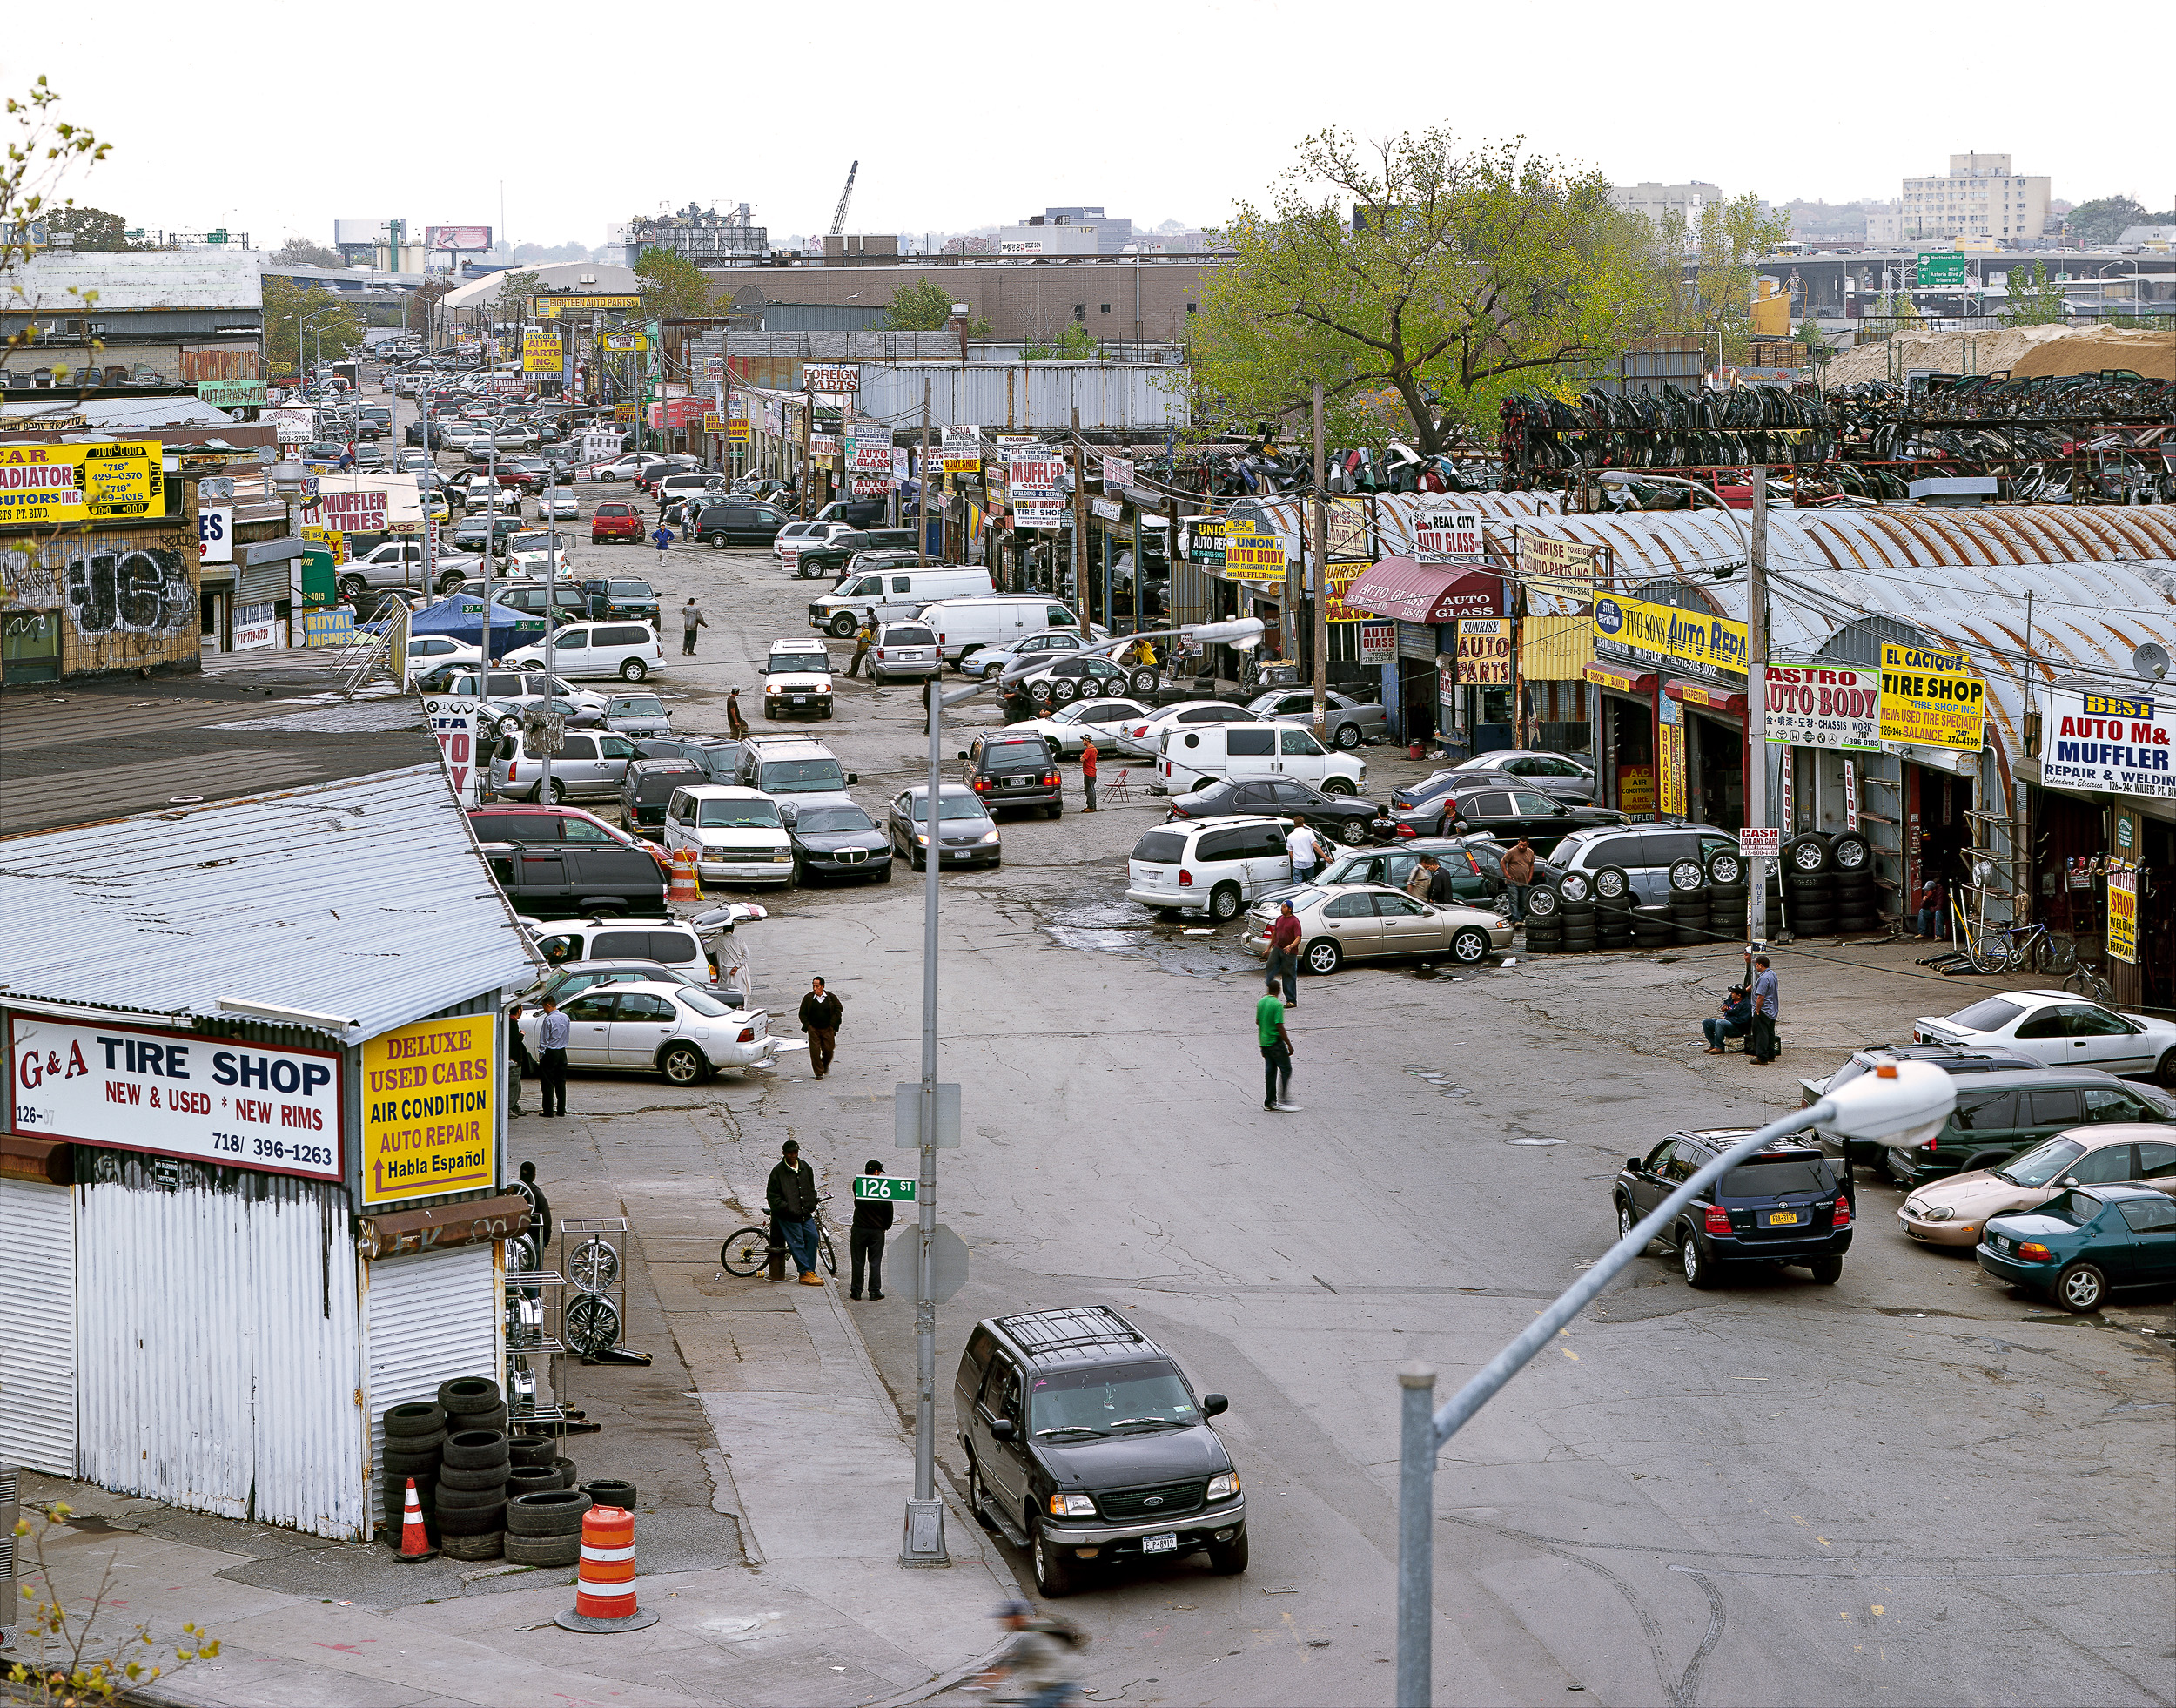 Willets Point, Queens, New York